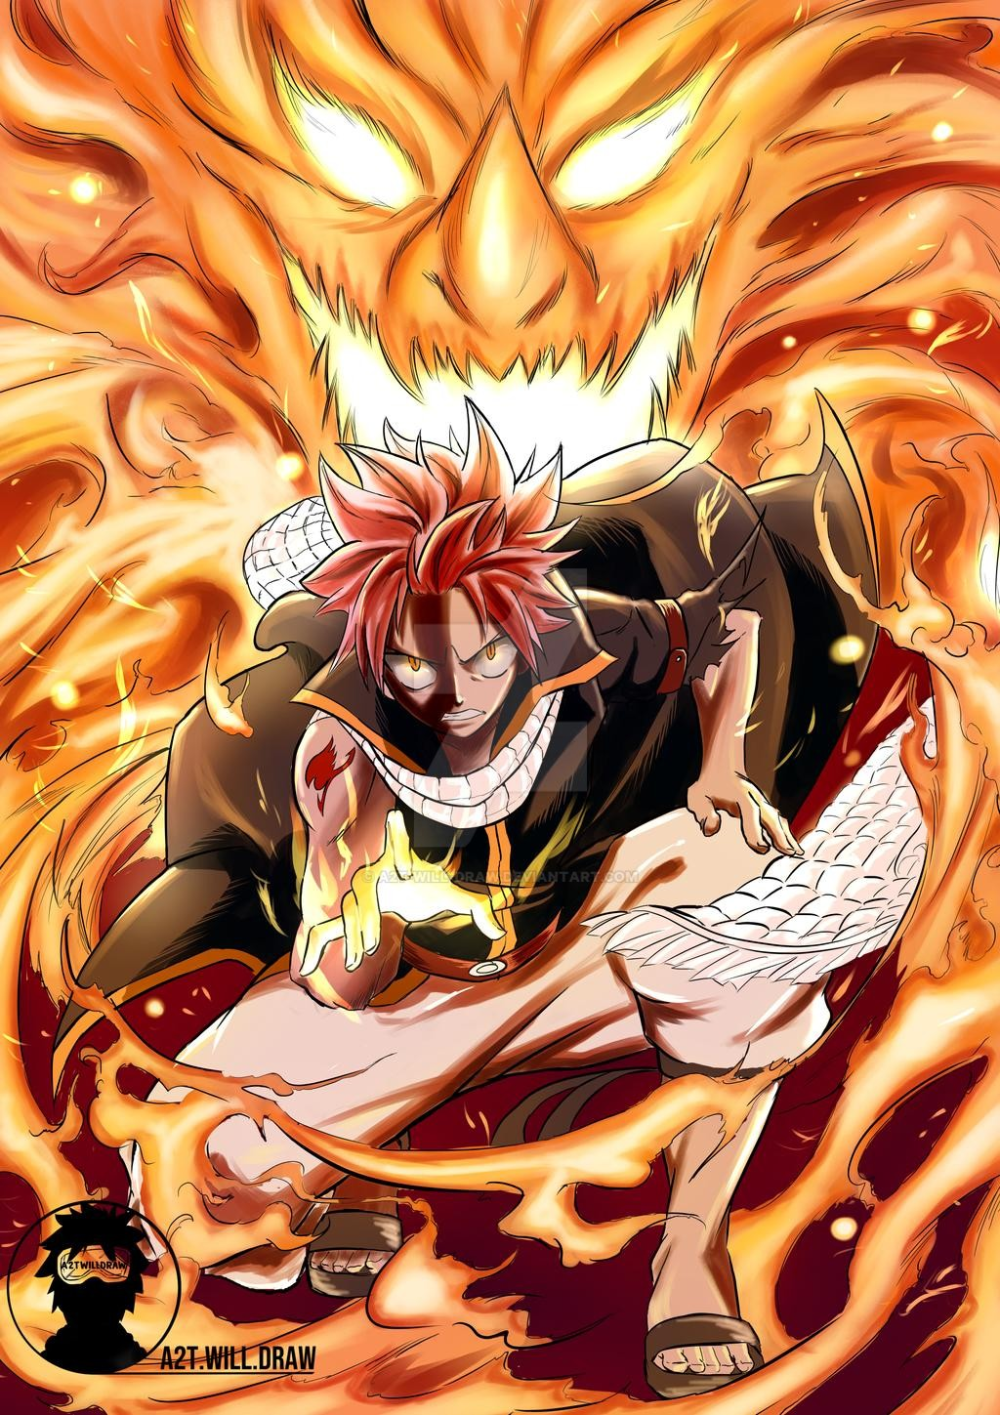 Speed Drawing Natsu Dragneel Fairy Tail By A2t Will Draw On Deviantart Natsu Fairy Tail Fairy Tail Pictures Fairy Tail Dragon Slayer